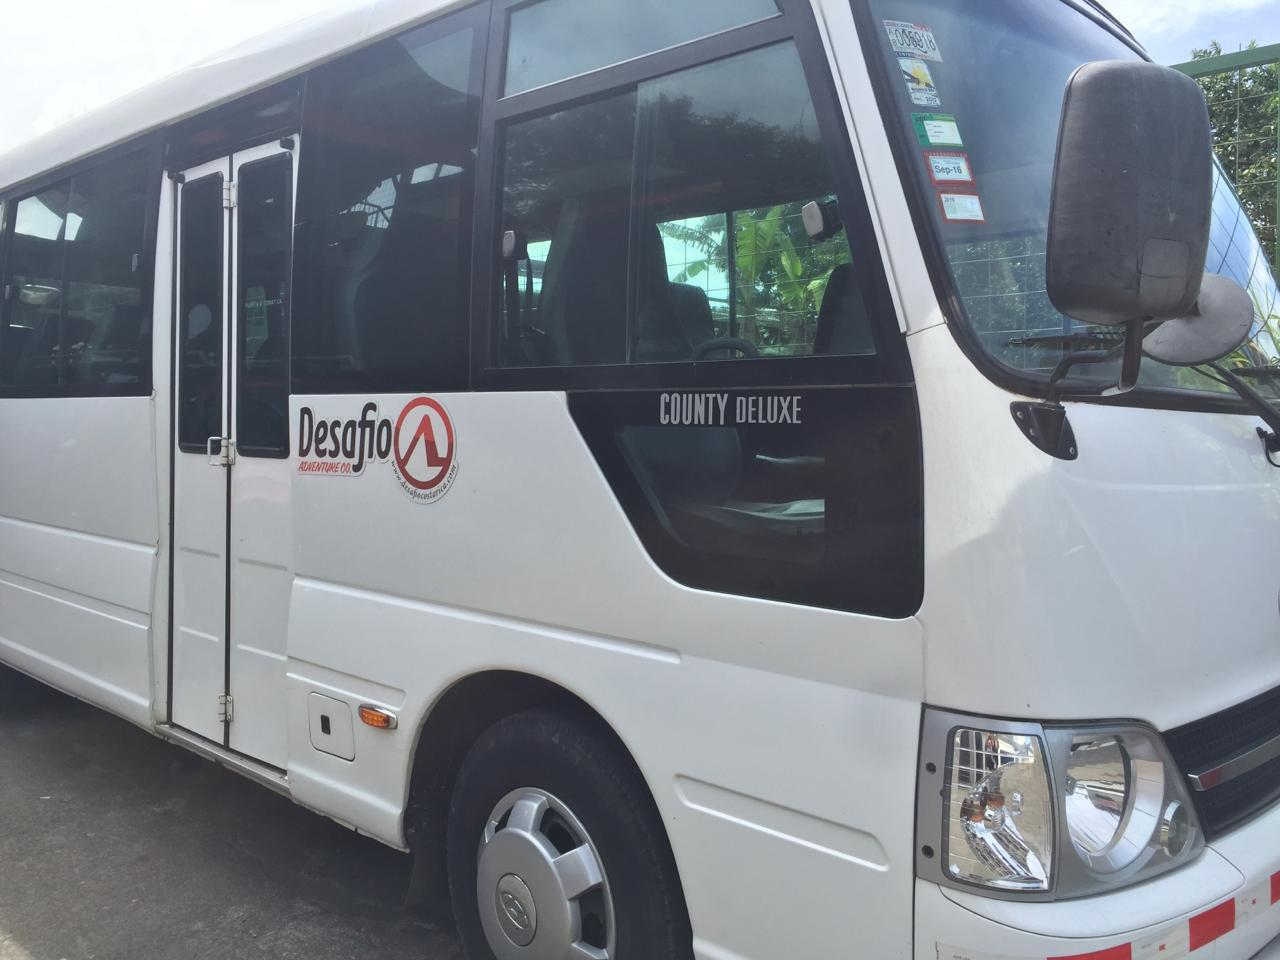 You can always count on Desafio transportation for providing reliable, safe, affordable and comfortable transfer service for anywhere in Costa Rica